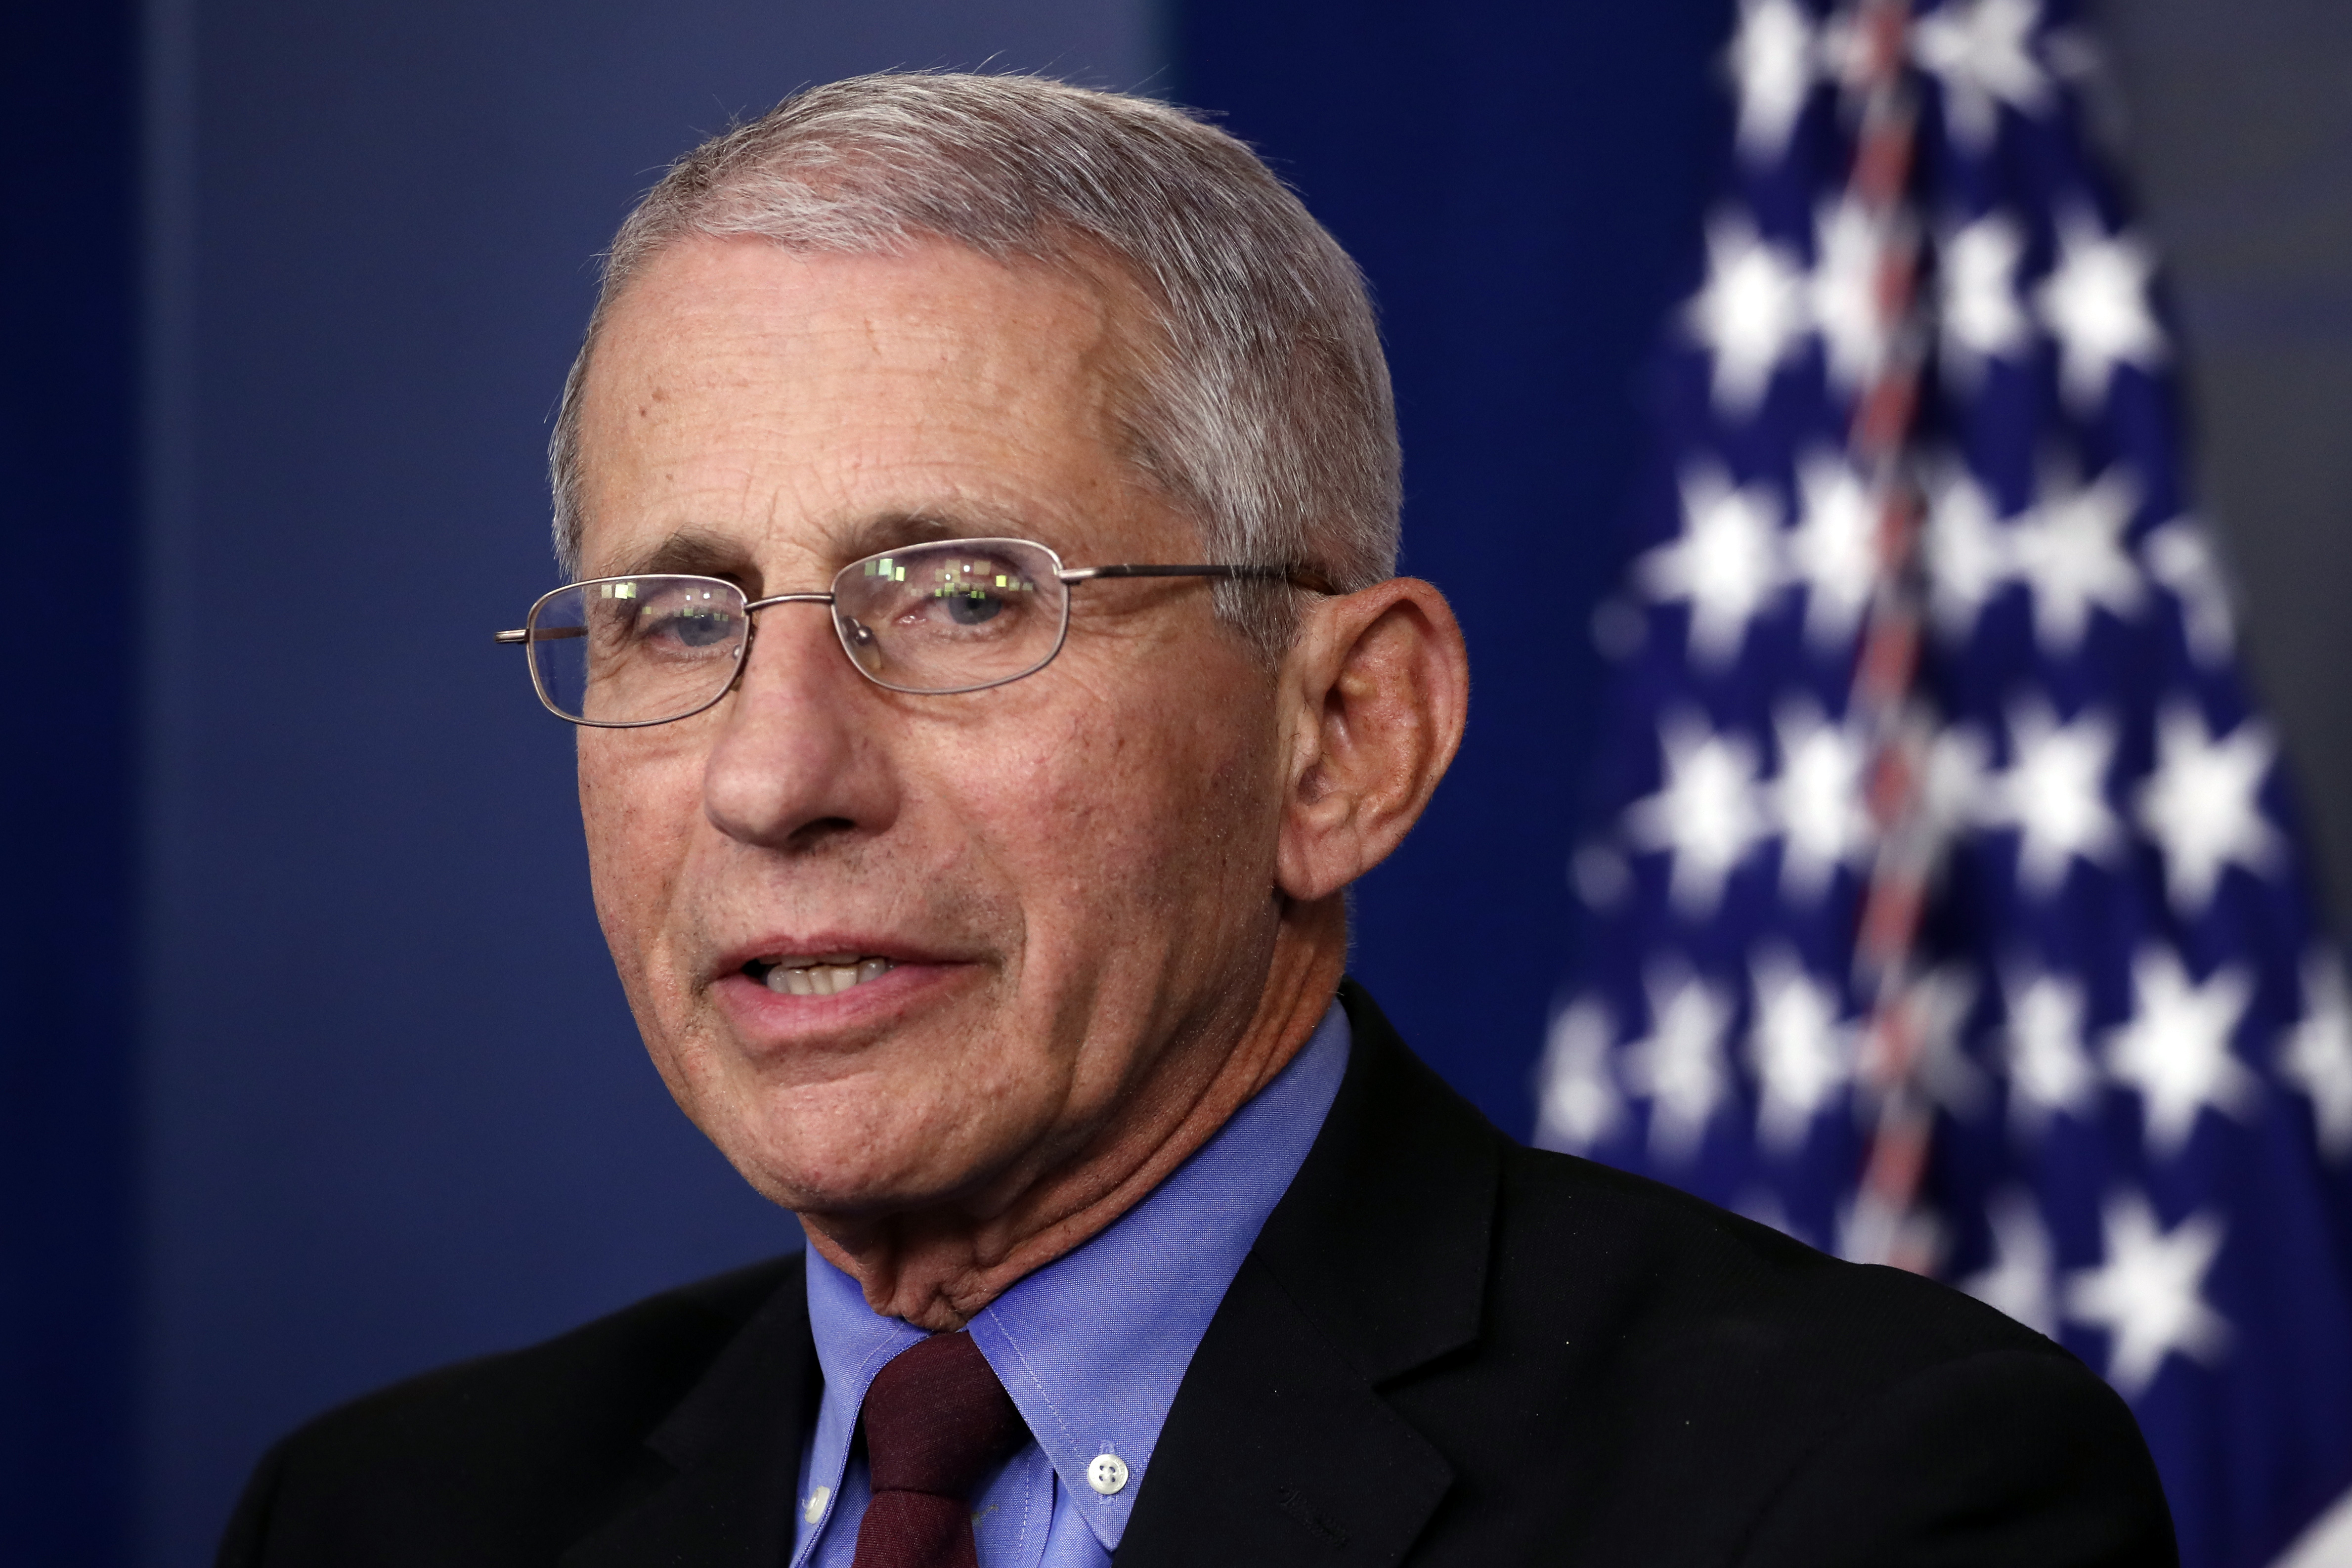 Dr. Anthony Fauci, the United States' top infectious disease expert, speaks about the coronavirus pandemic at the White House on Friday, March 27.